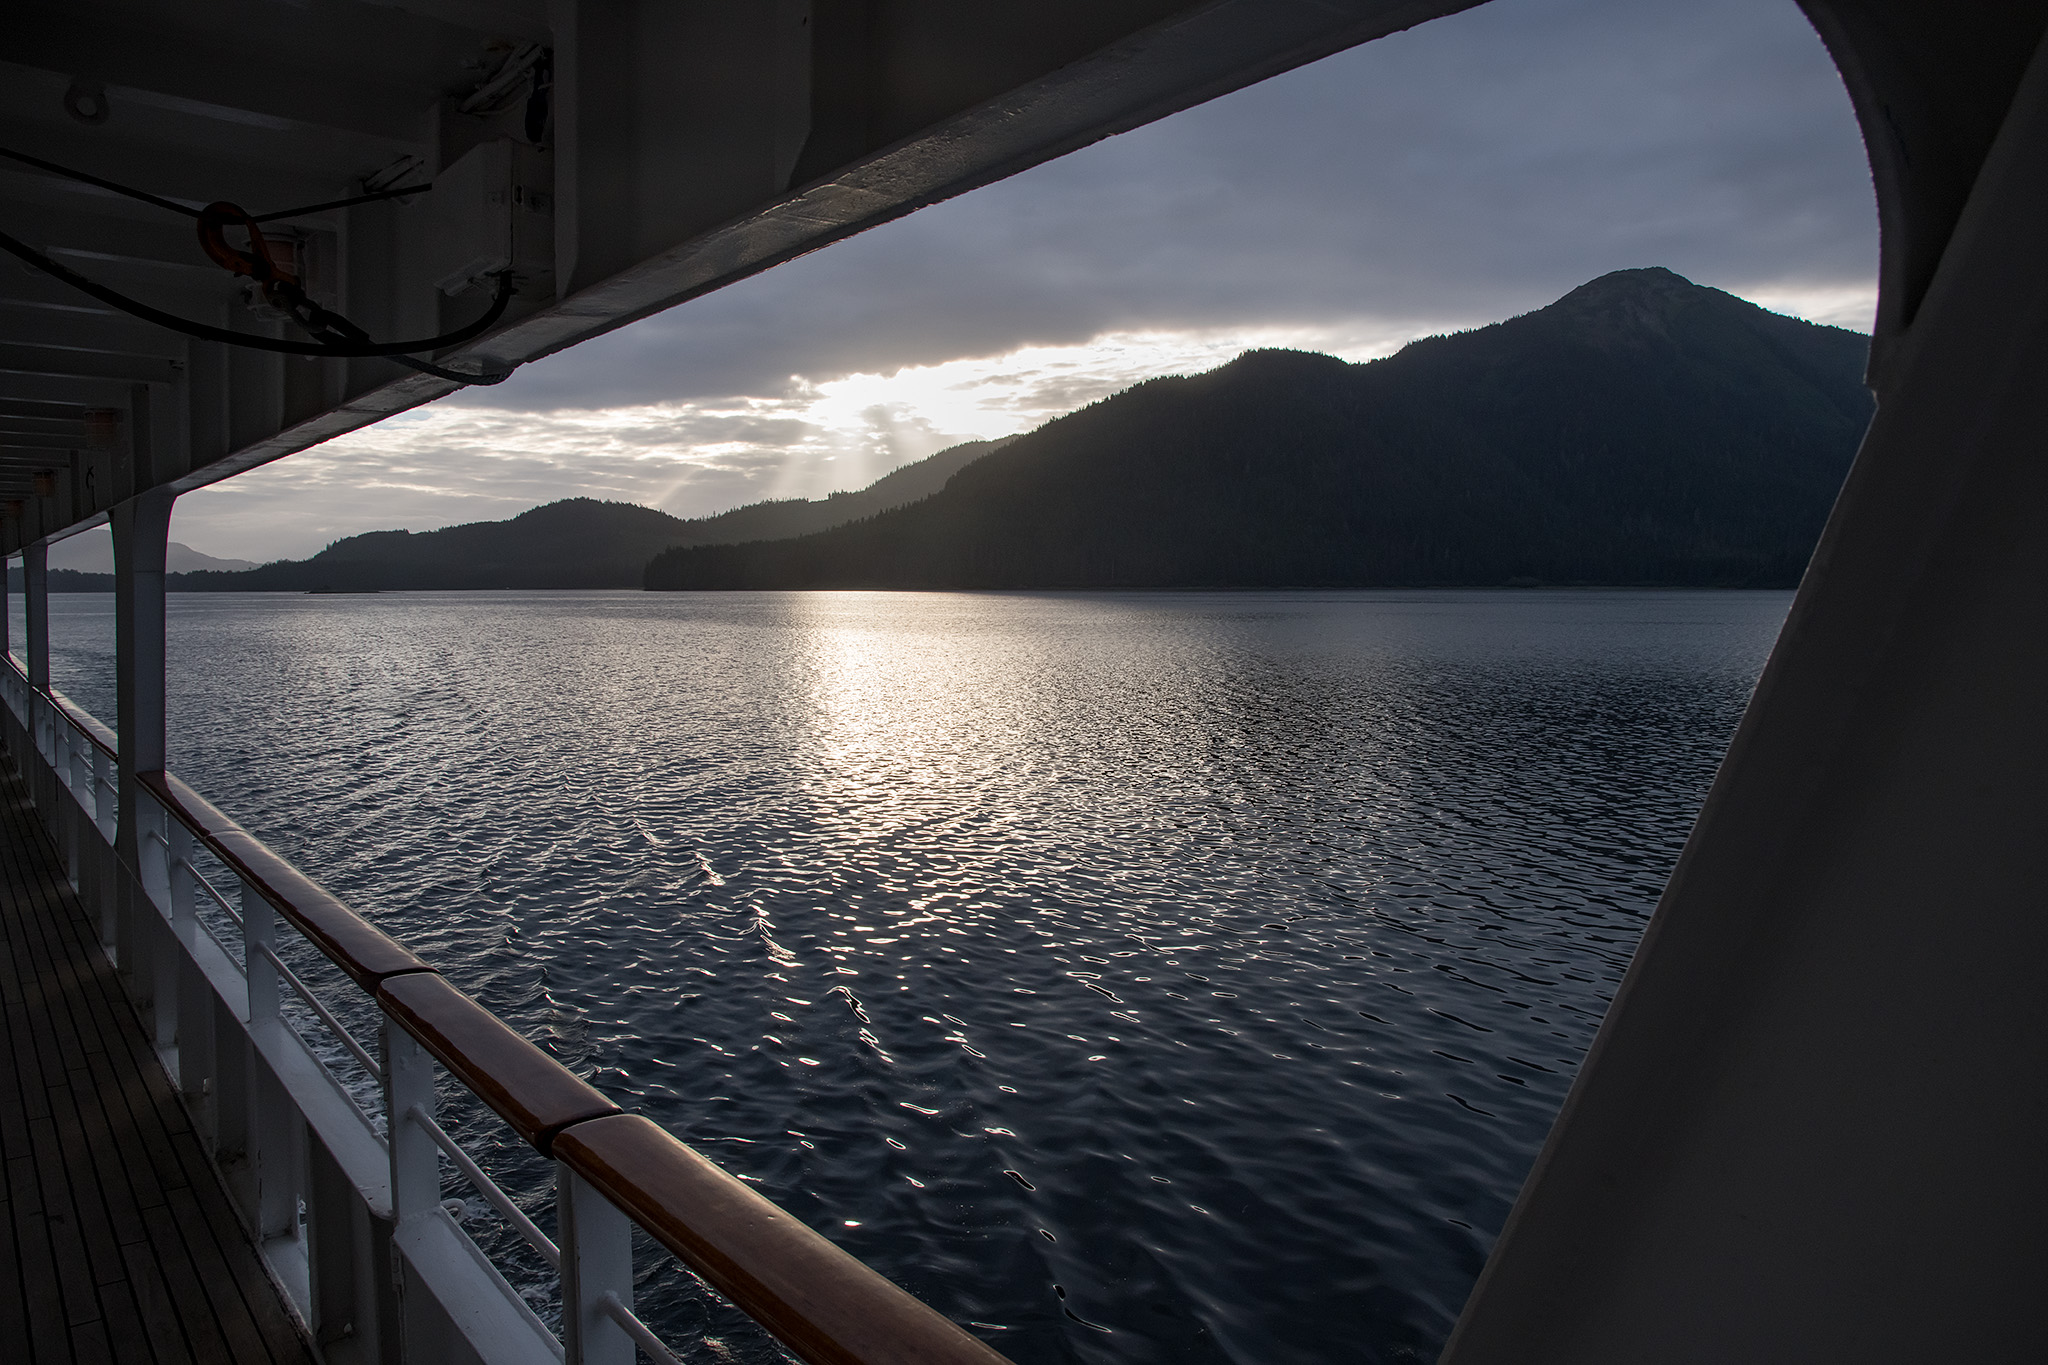 View from the Promenade Deck